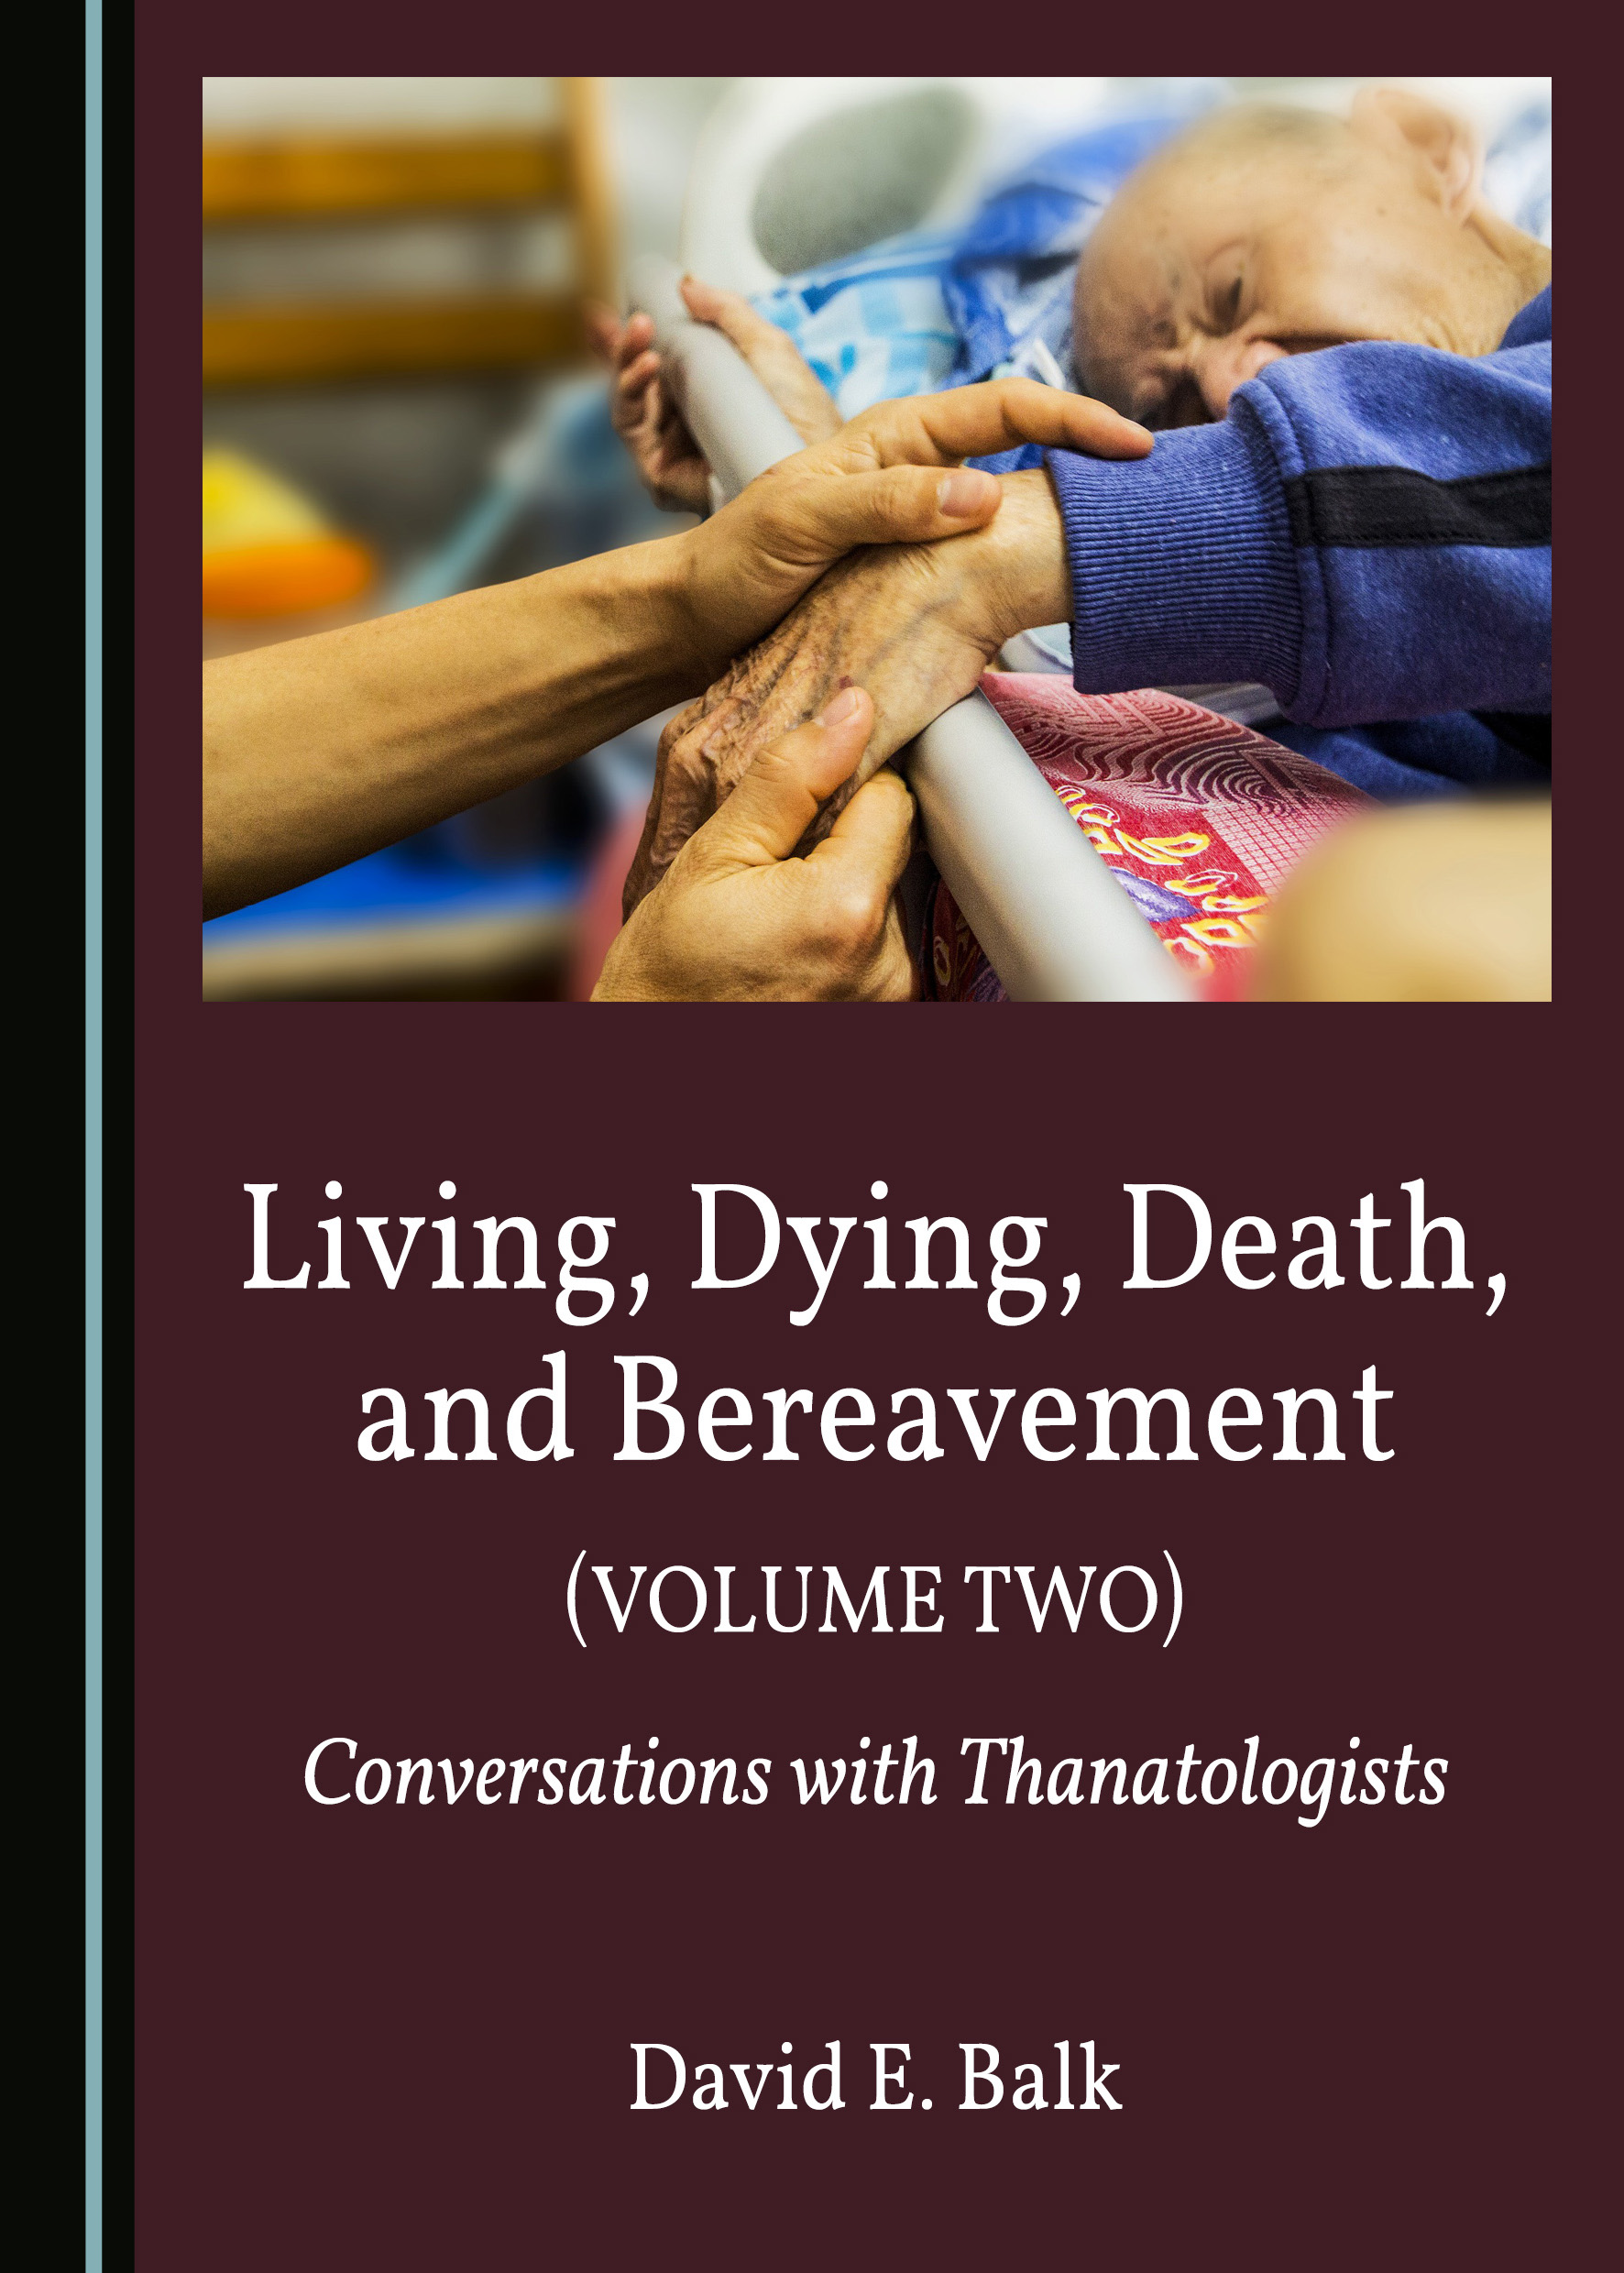 Living, Dying, Death, and Bereavement (Volume Two): Conversations with Thanatologists